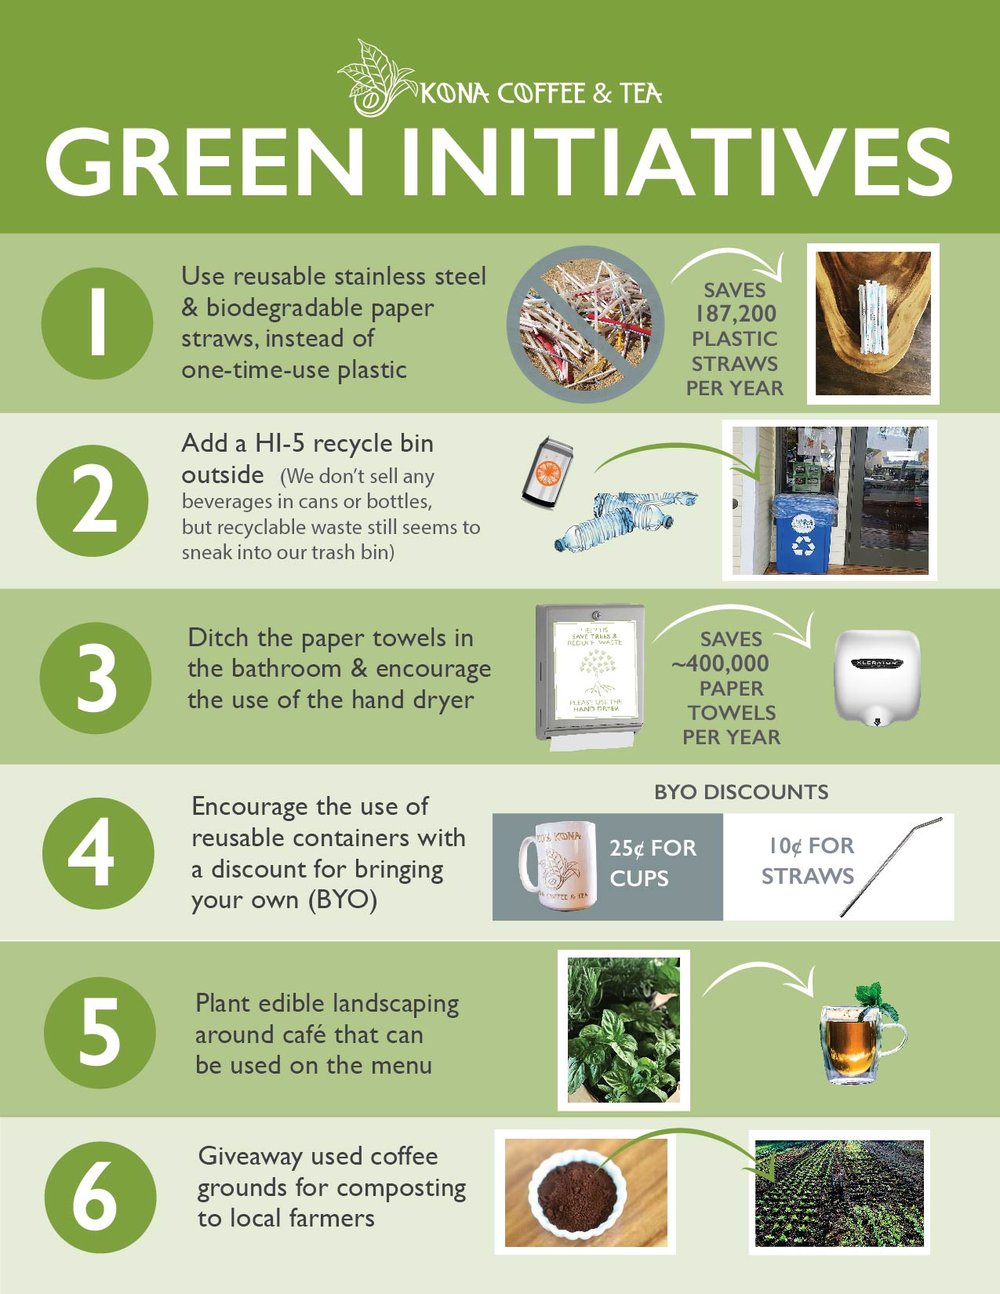 Green Initiatives 2018 Cafe KCTC_web-01.jpg